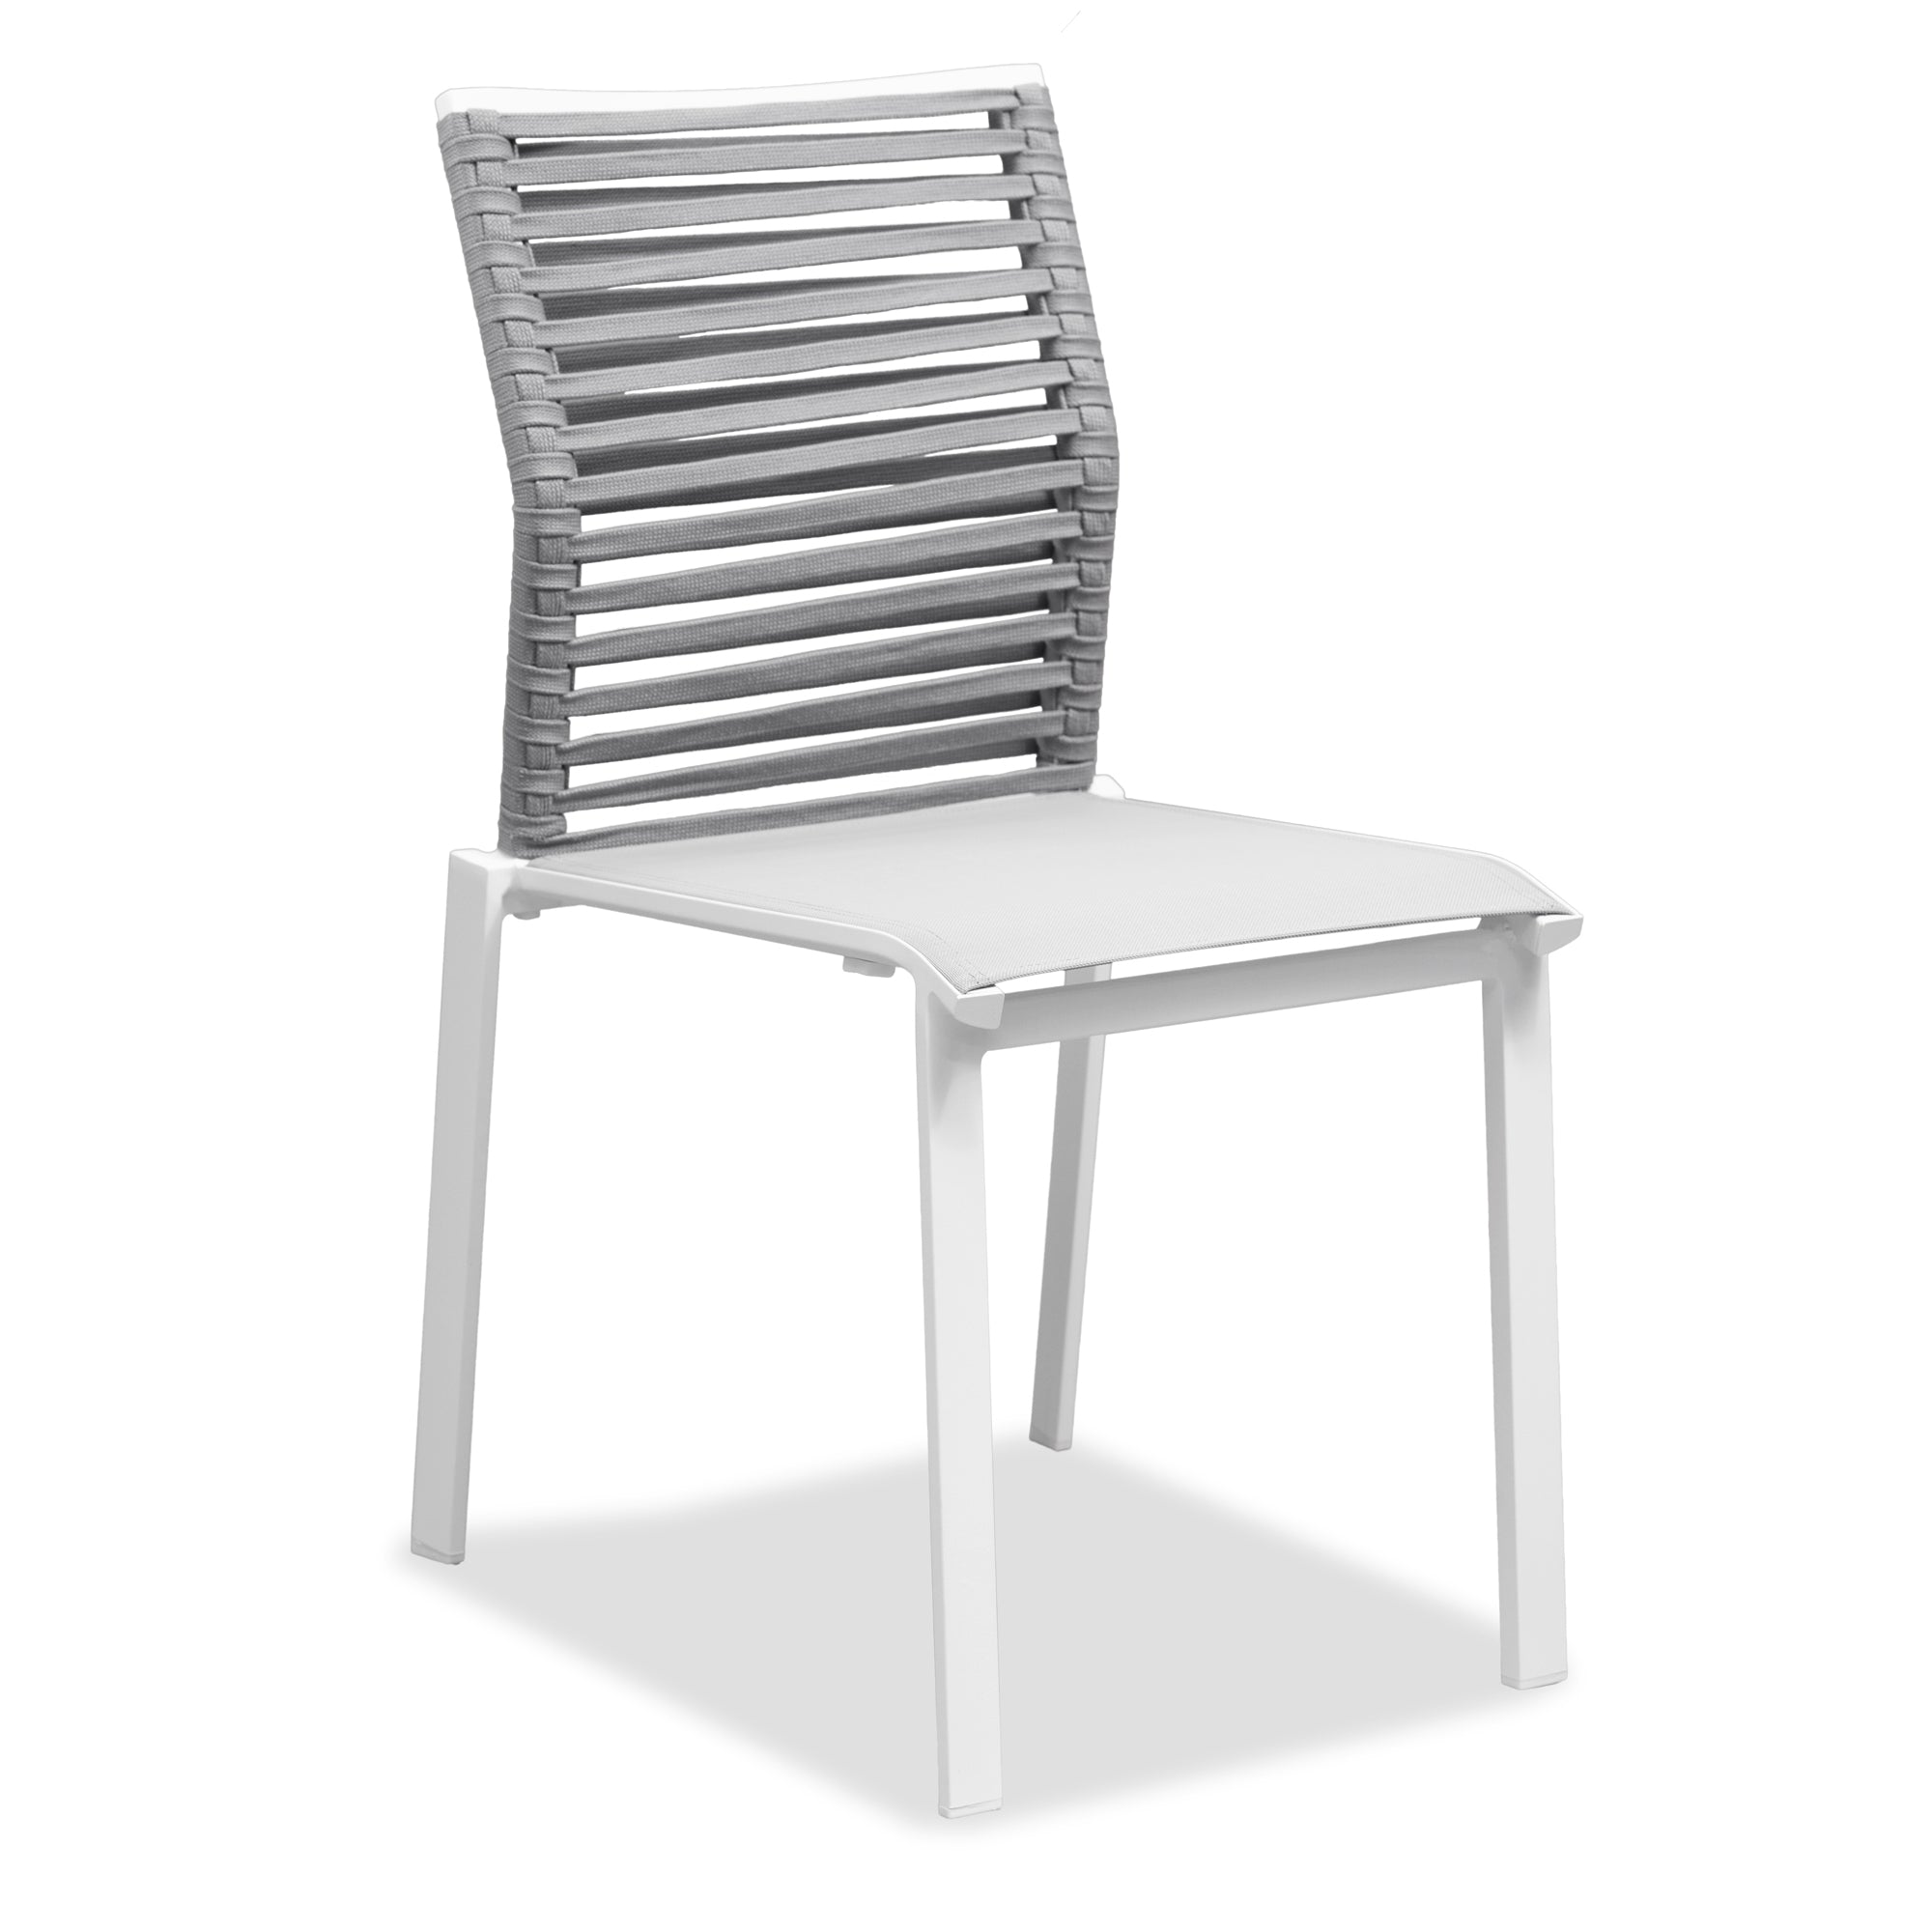 Eleve Outdoor Rope Dining Chair, Dining Chair - Home-Buy Interiors